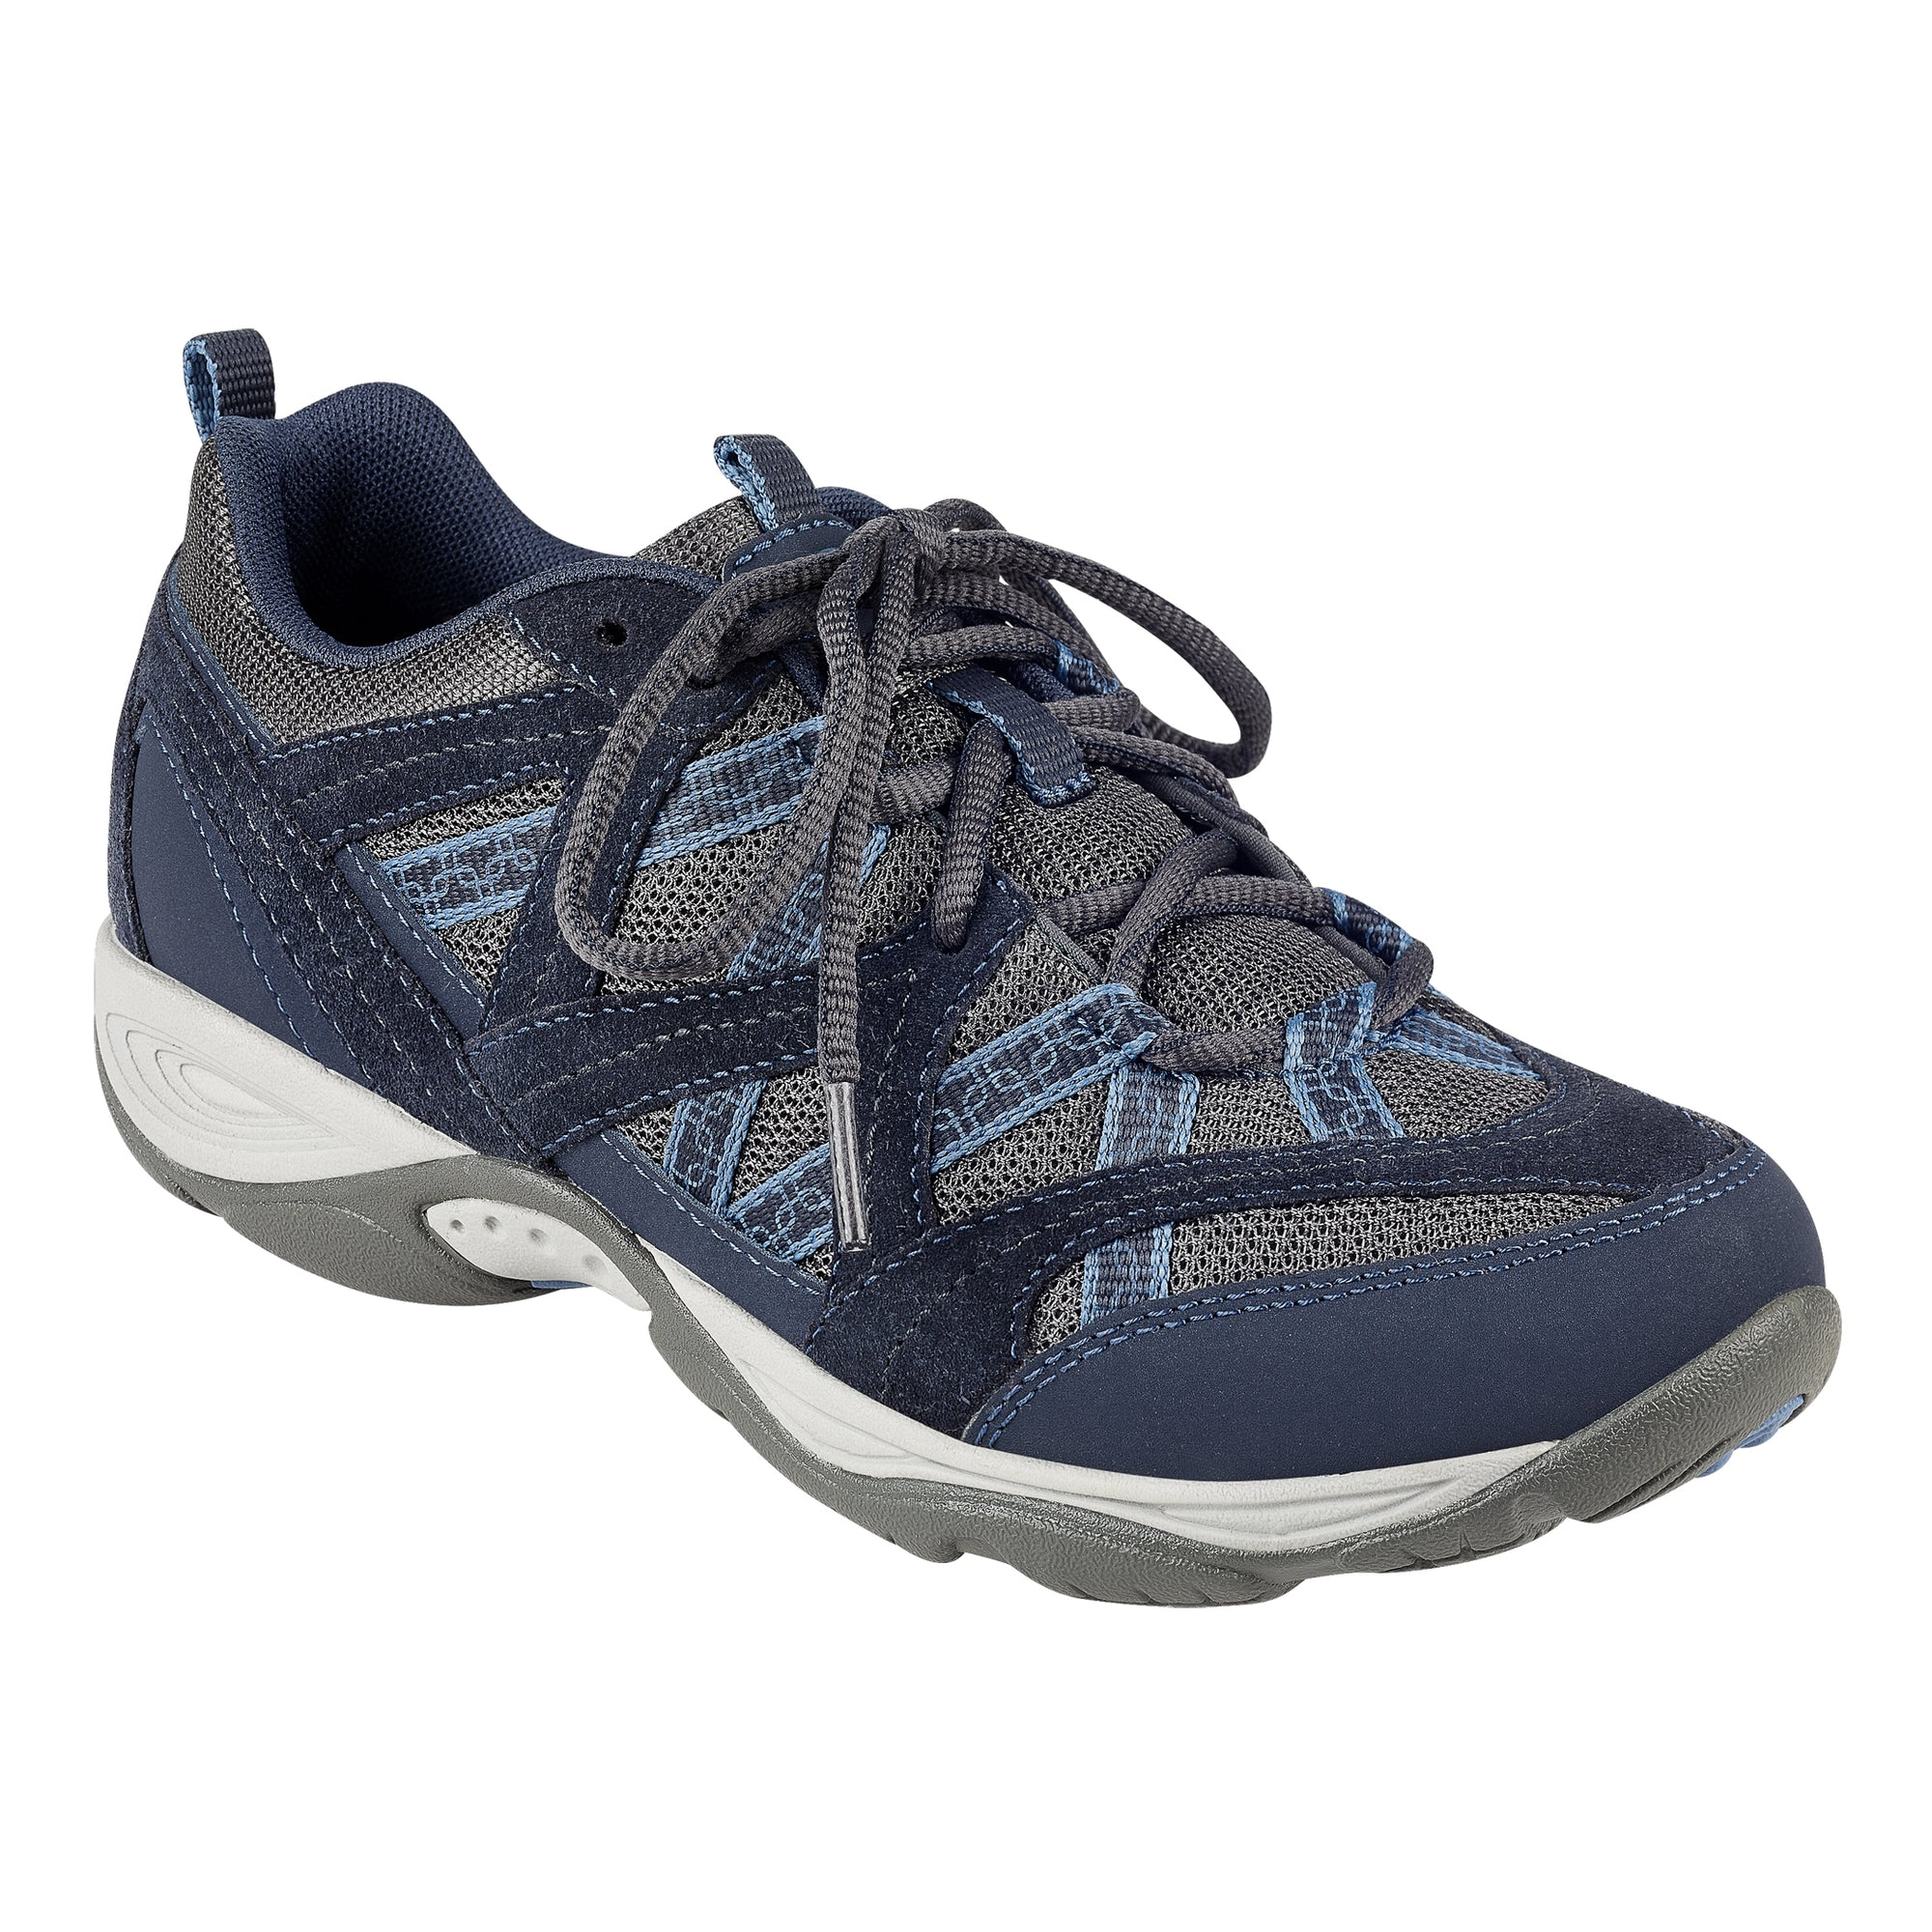 Exploremap Walking Shoes